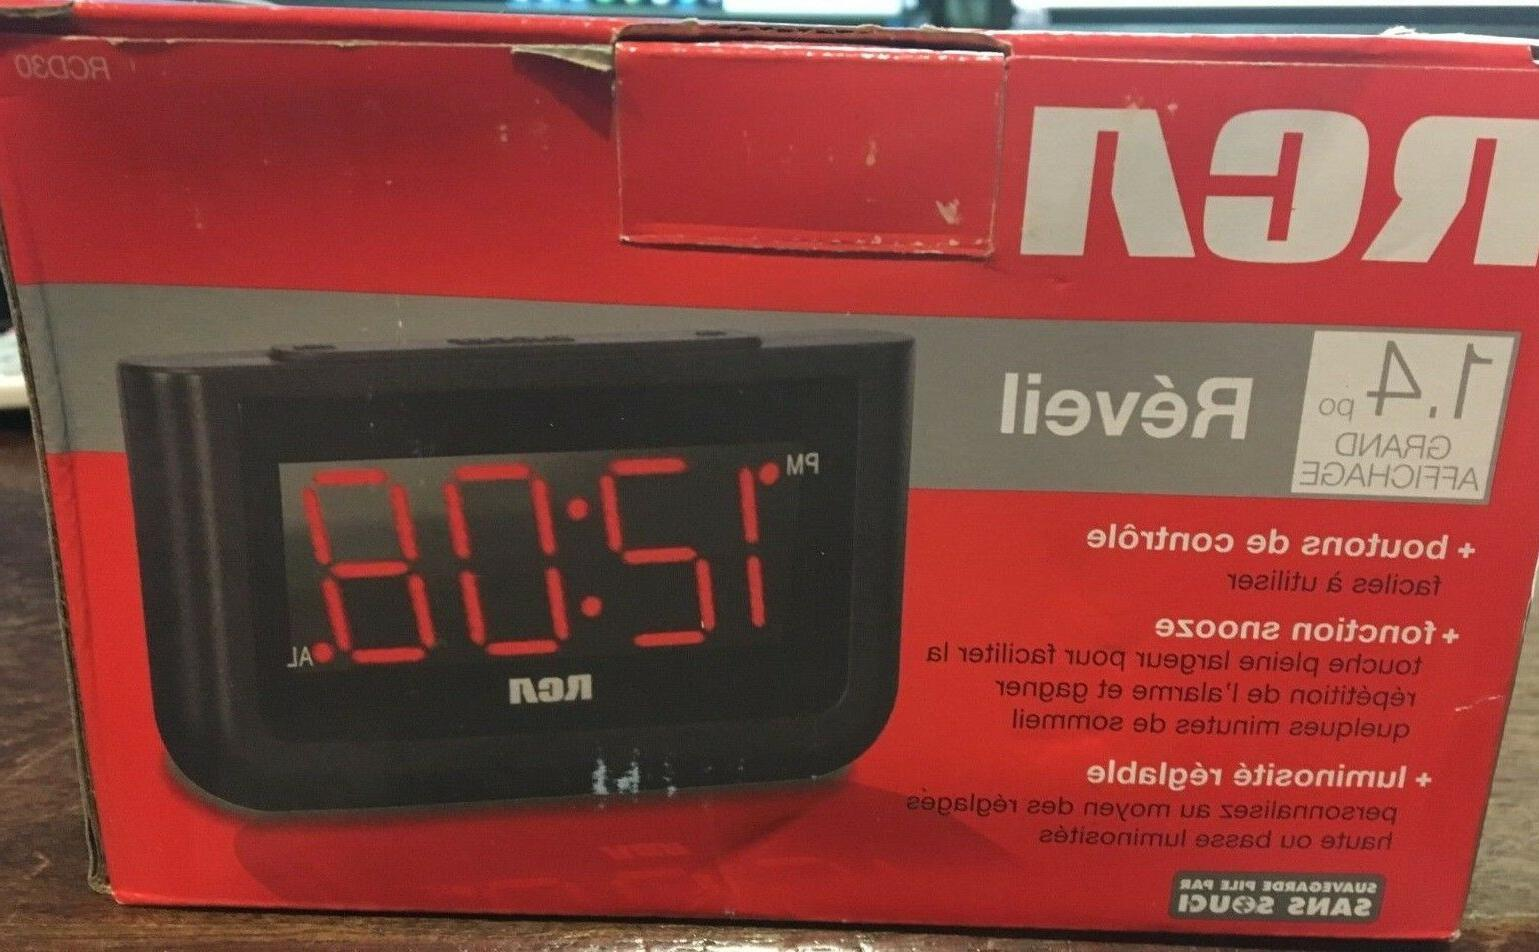 RCA Digital Alarm Clock with New